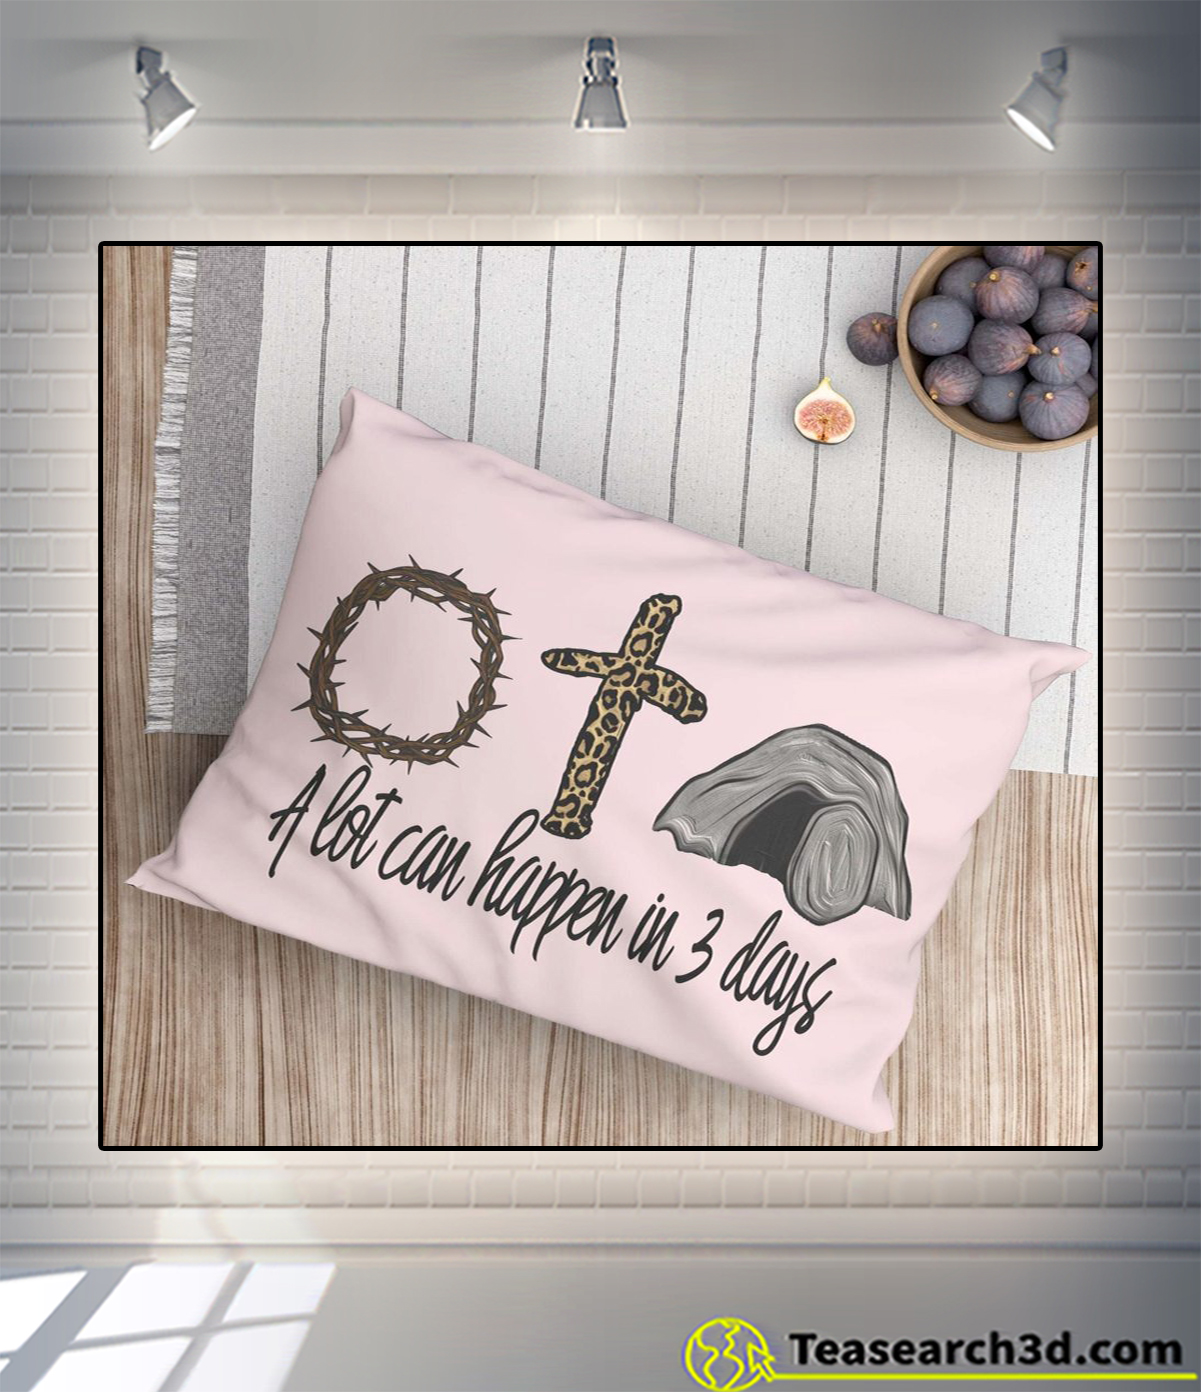 A lot can happen in 3 days jesus easter pillow pink